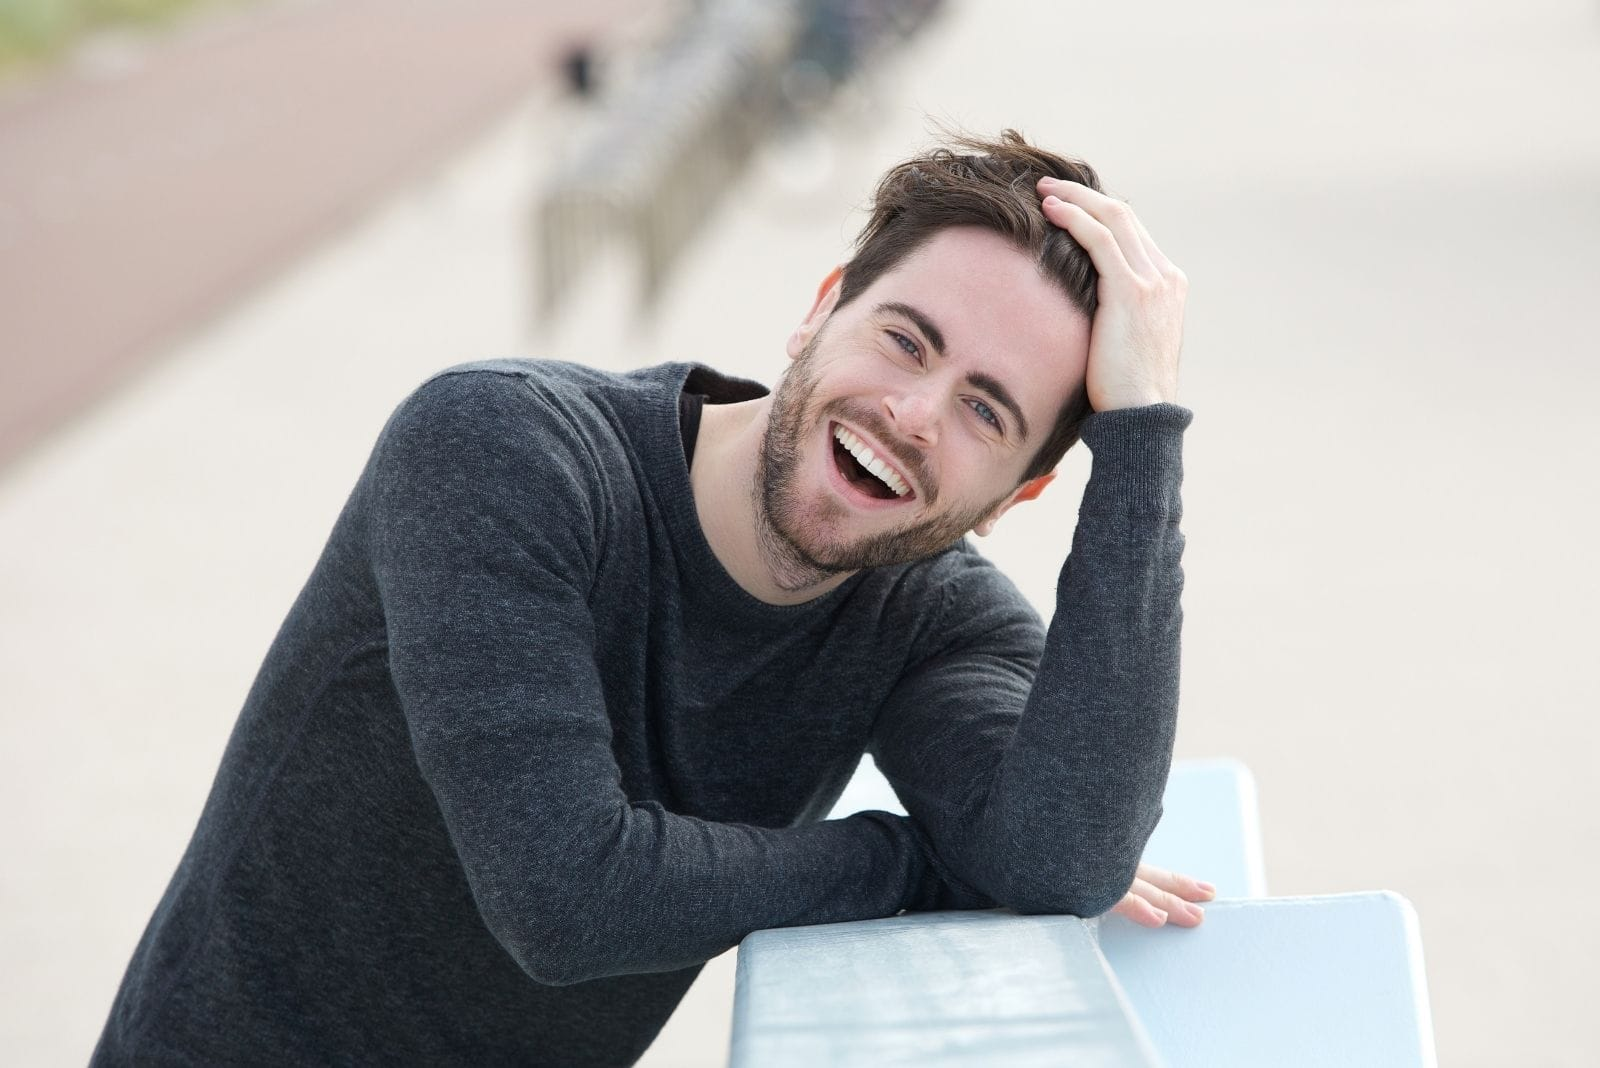 young man laughing holding his head leaning on the ledge outdoors